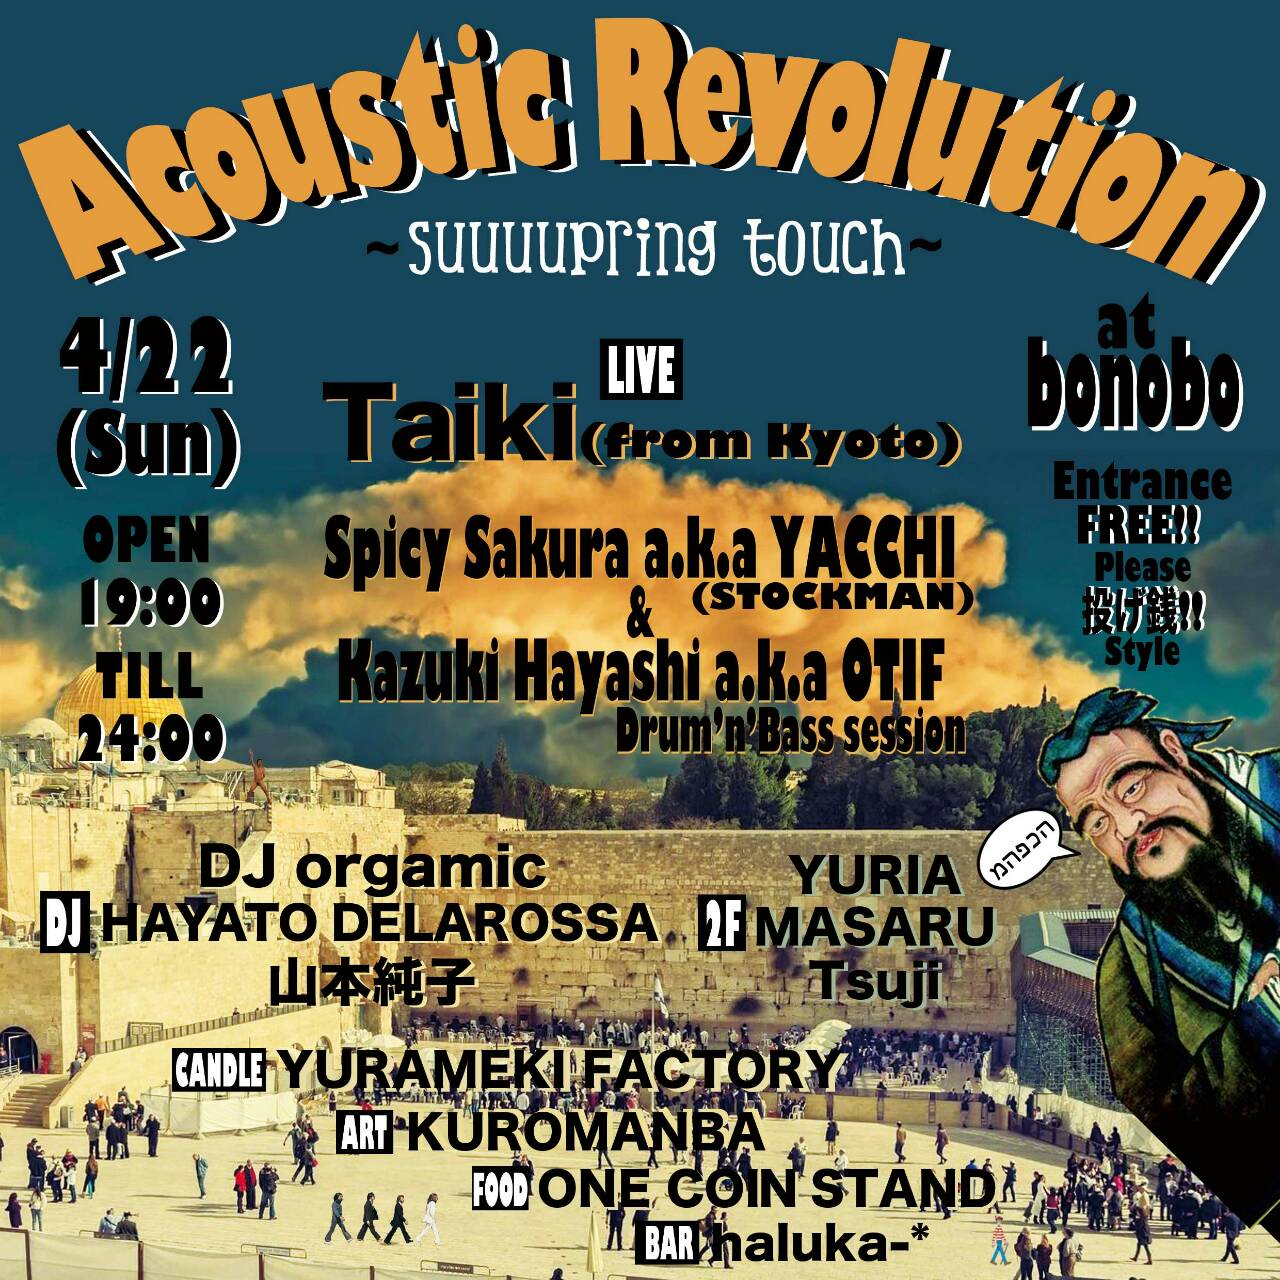 「Acoustic Revolution ~suuuupring touch~」